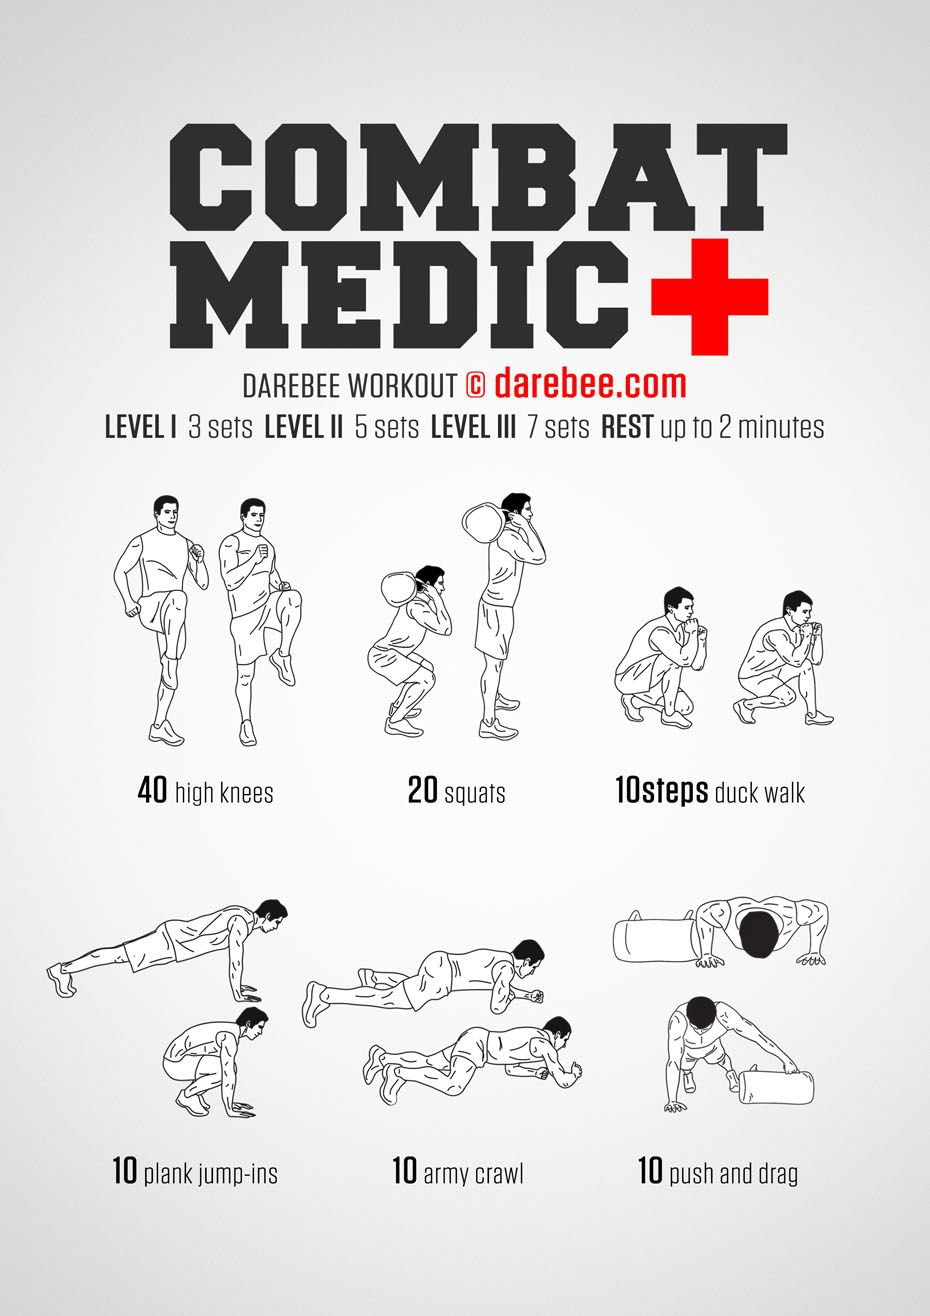 Combat Medic Workout | workouts | Military workout, Army workout